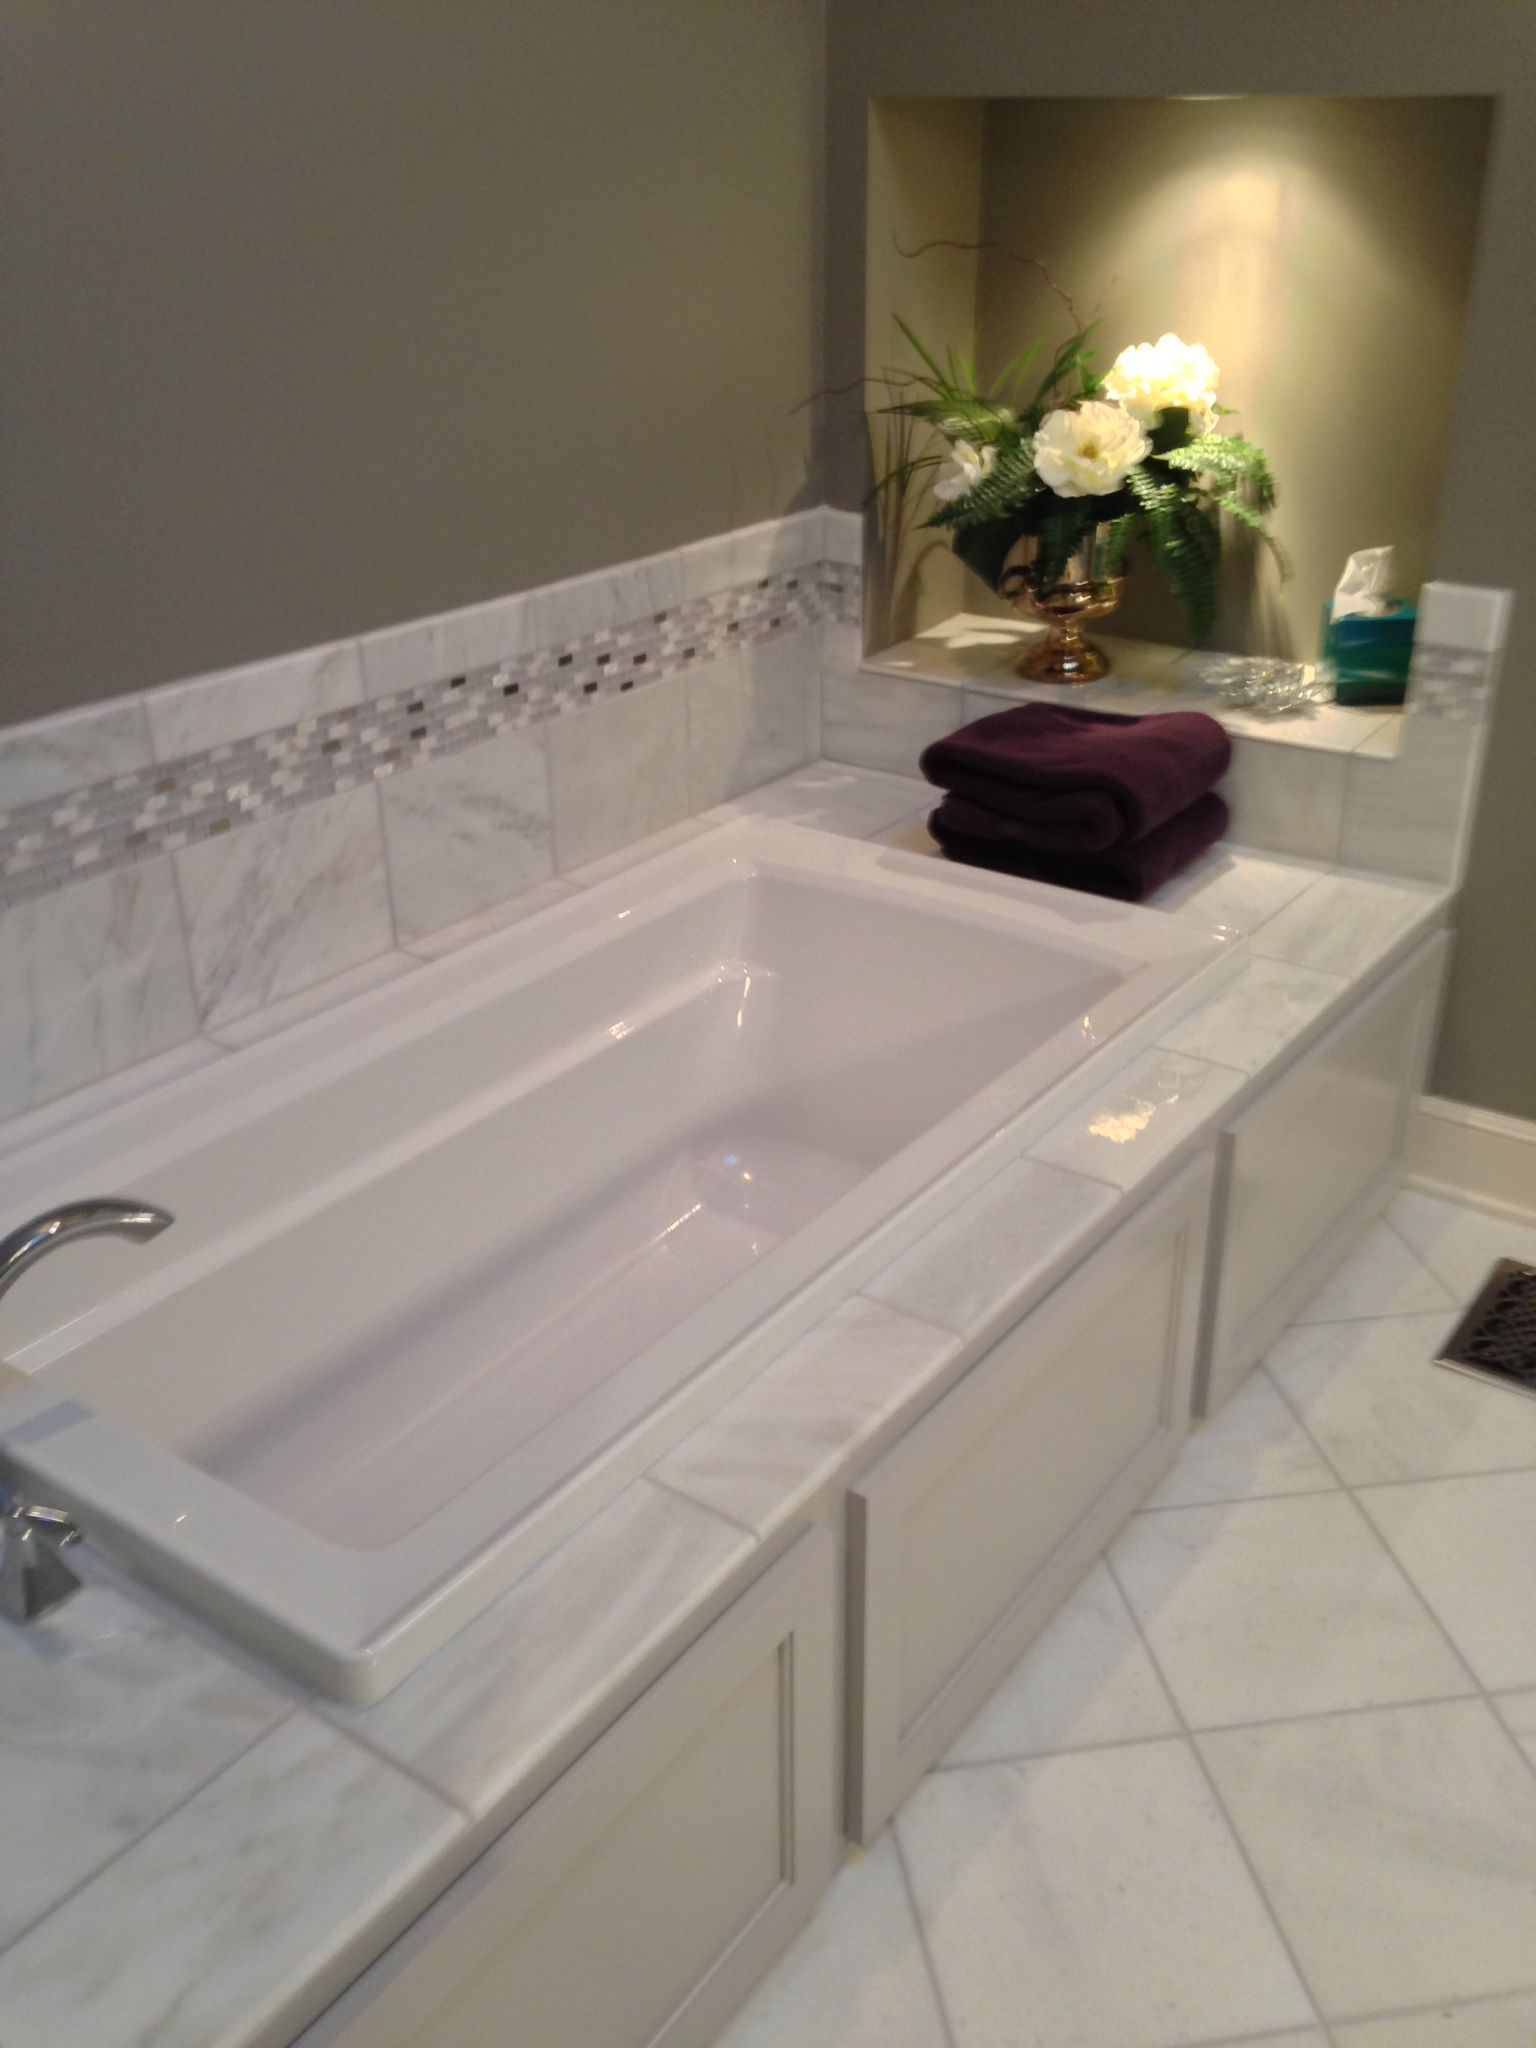 Drop In Jacuzzi Bath Tub With Tile Backsplash And Cabinet